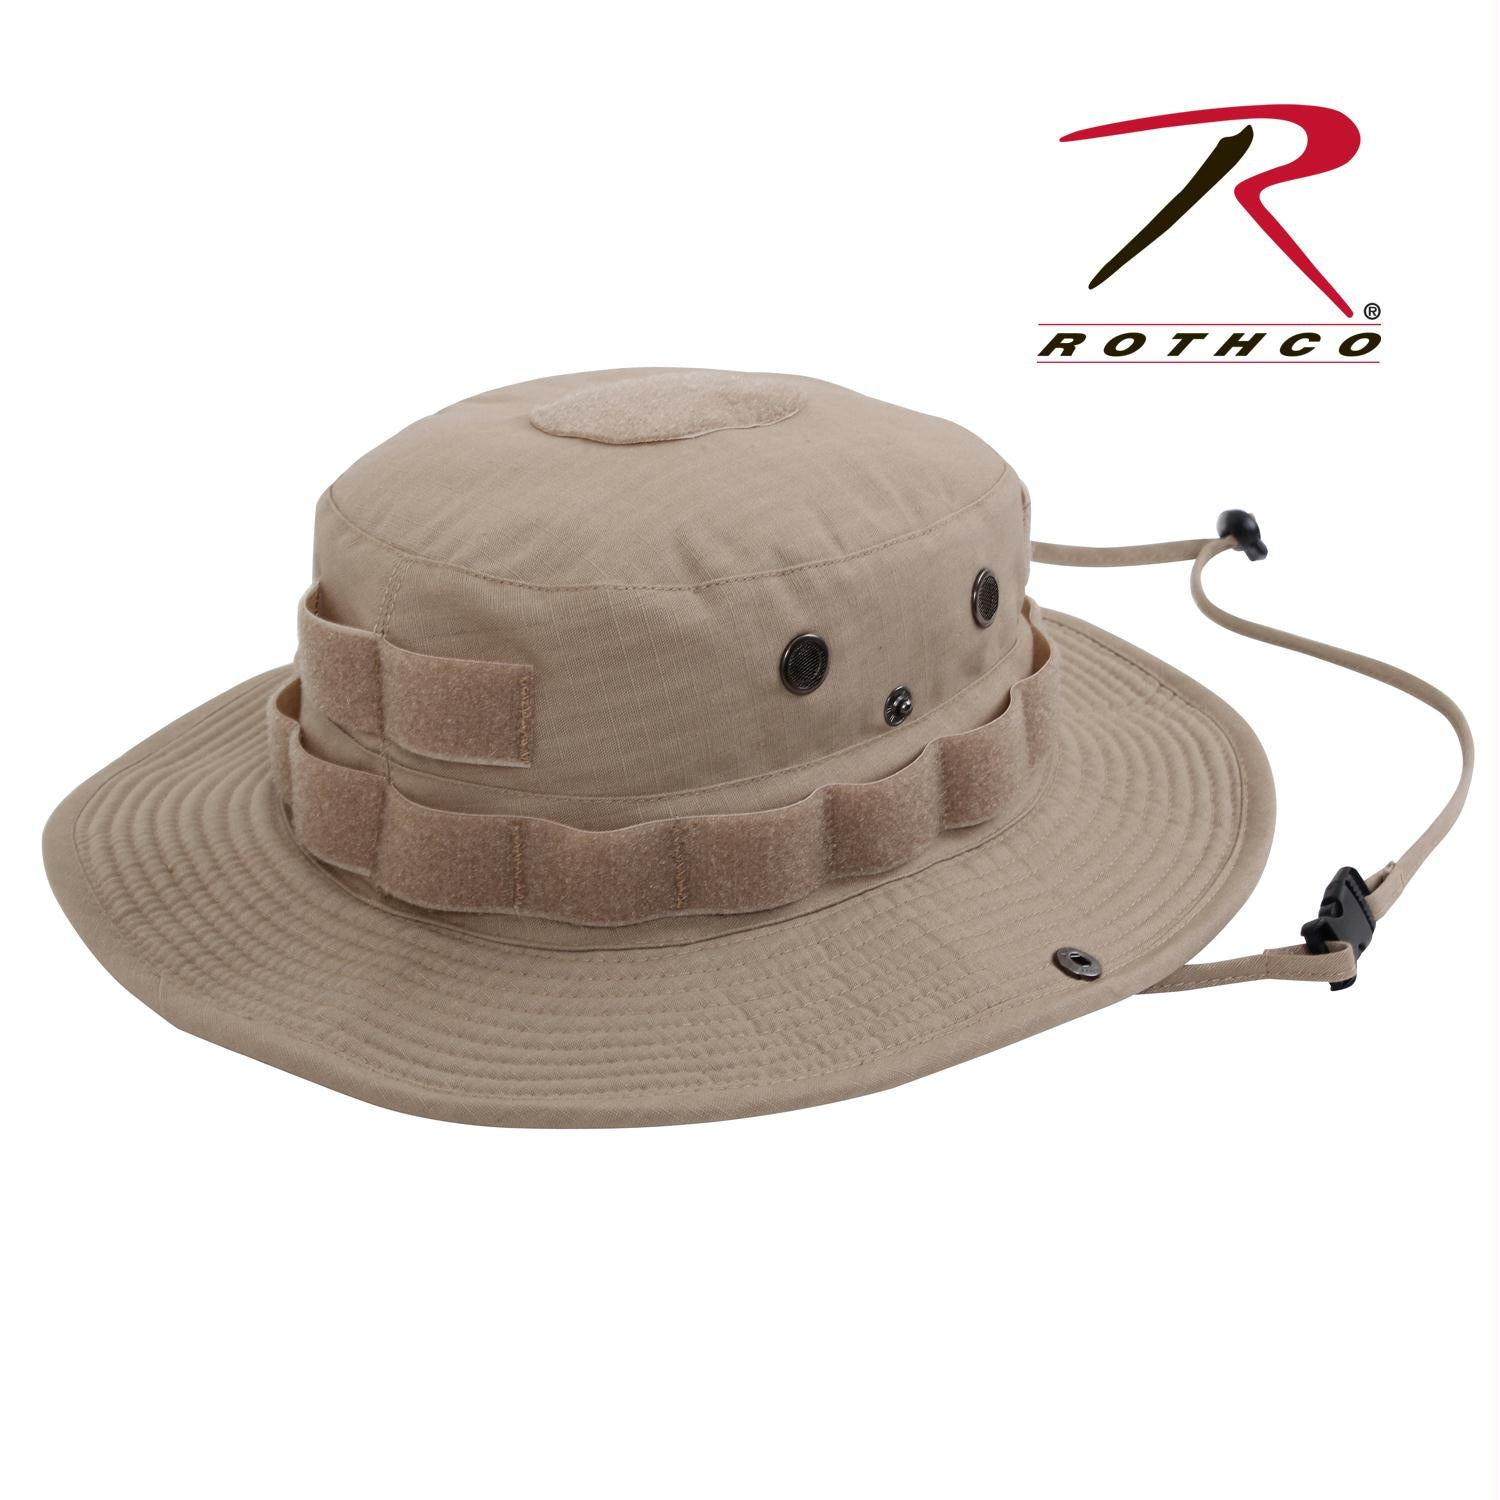 Rothco Tactical Boonie Hat - Tan / 7 1/4